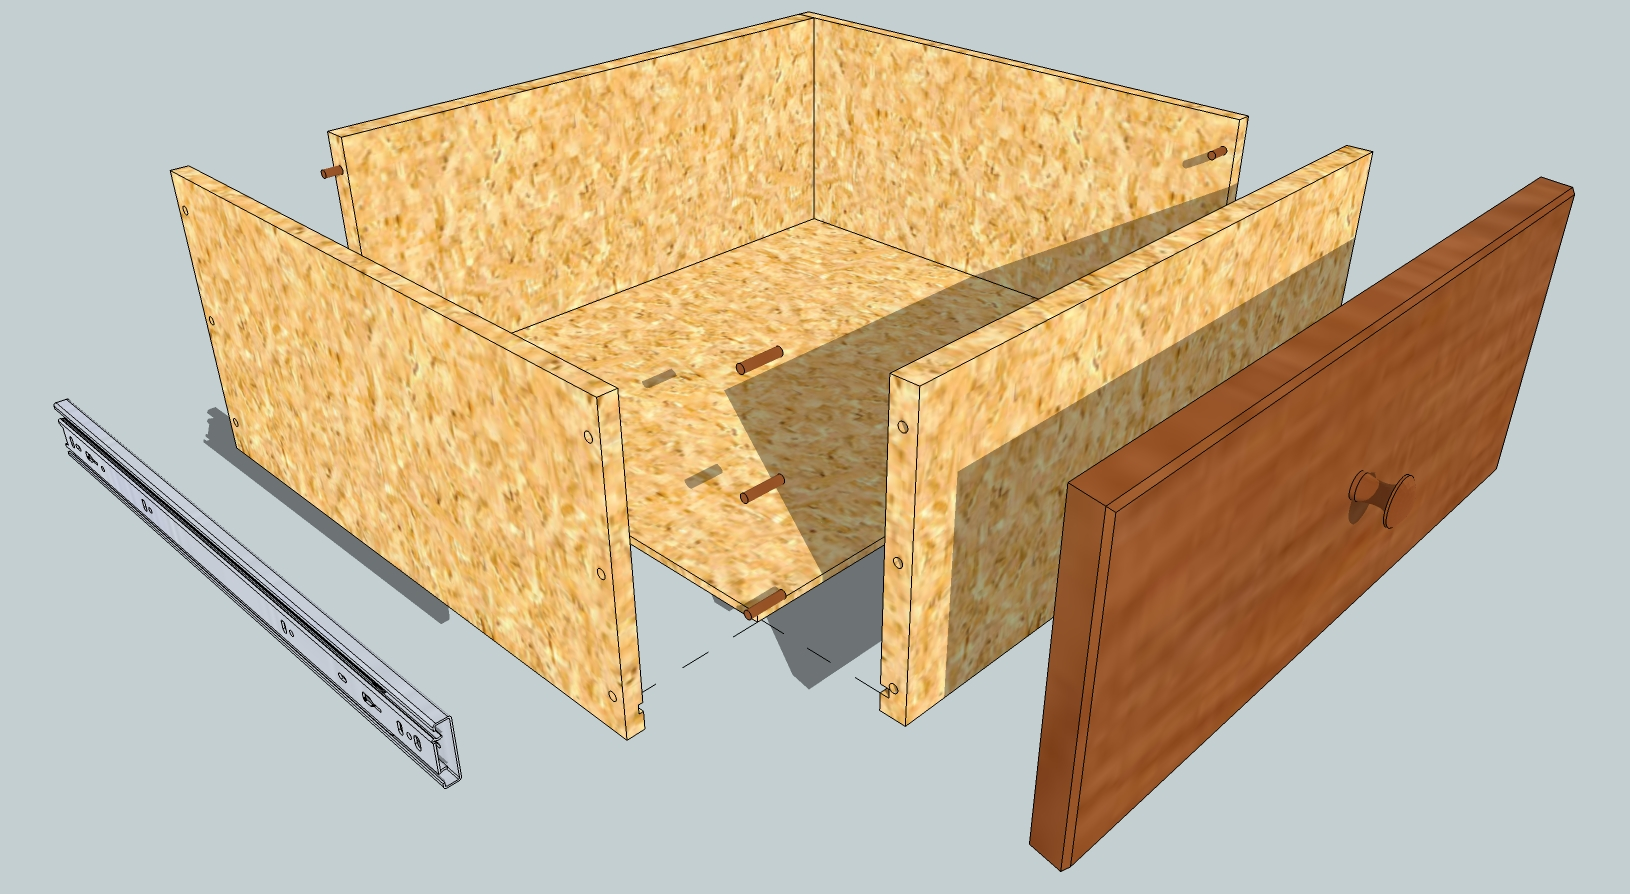 woodhaven 365p deluxe router table cabinet plans